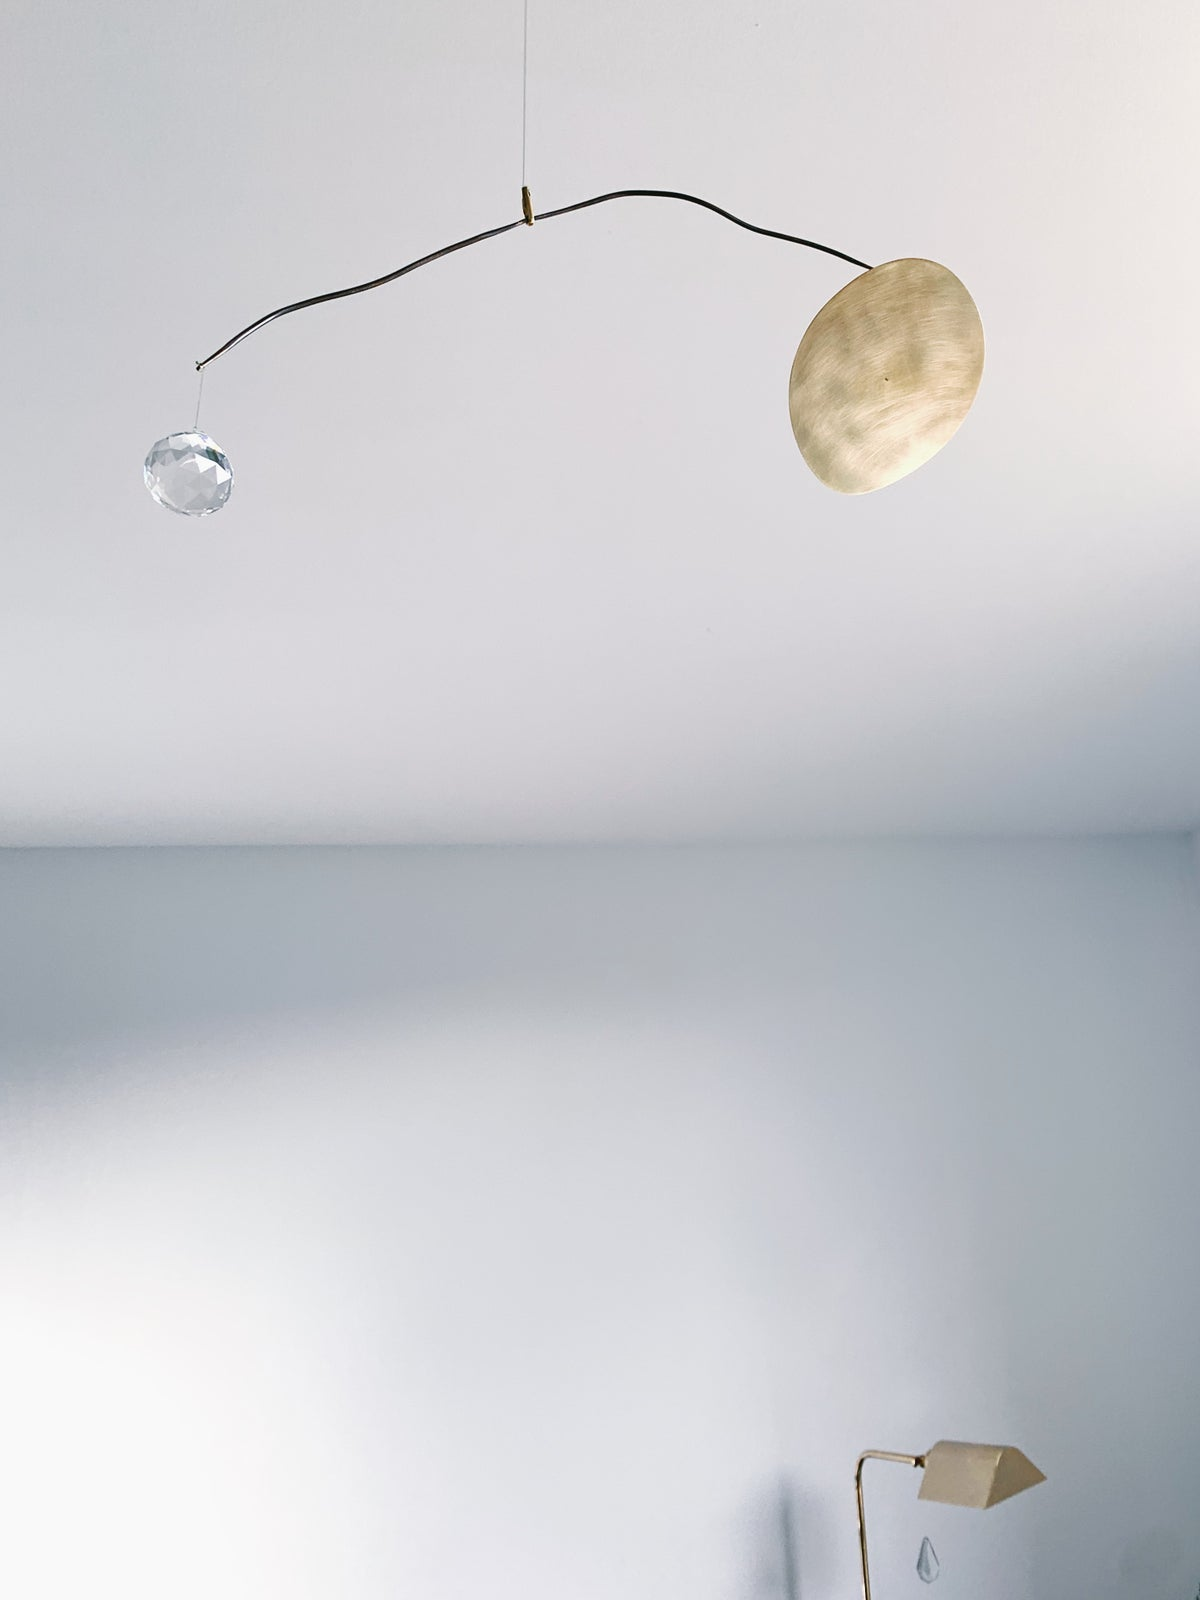 Image of Sun And Moon Kinetic Sculpture